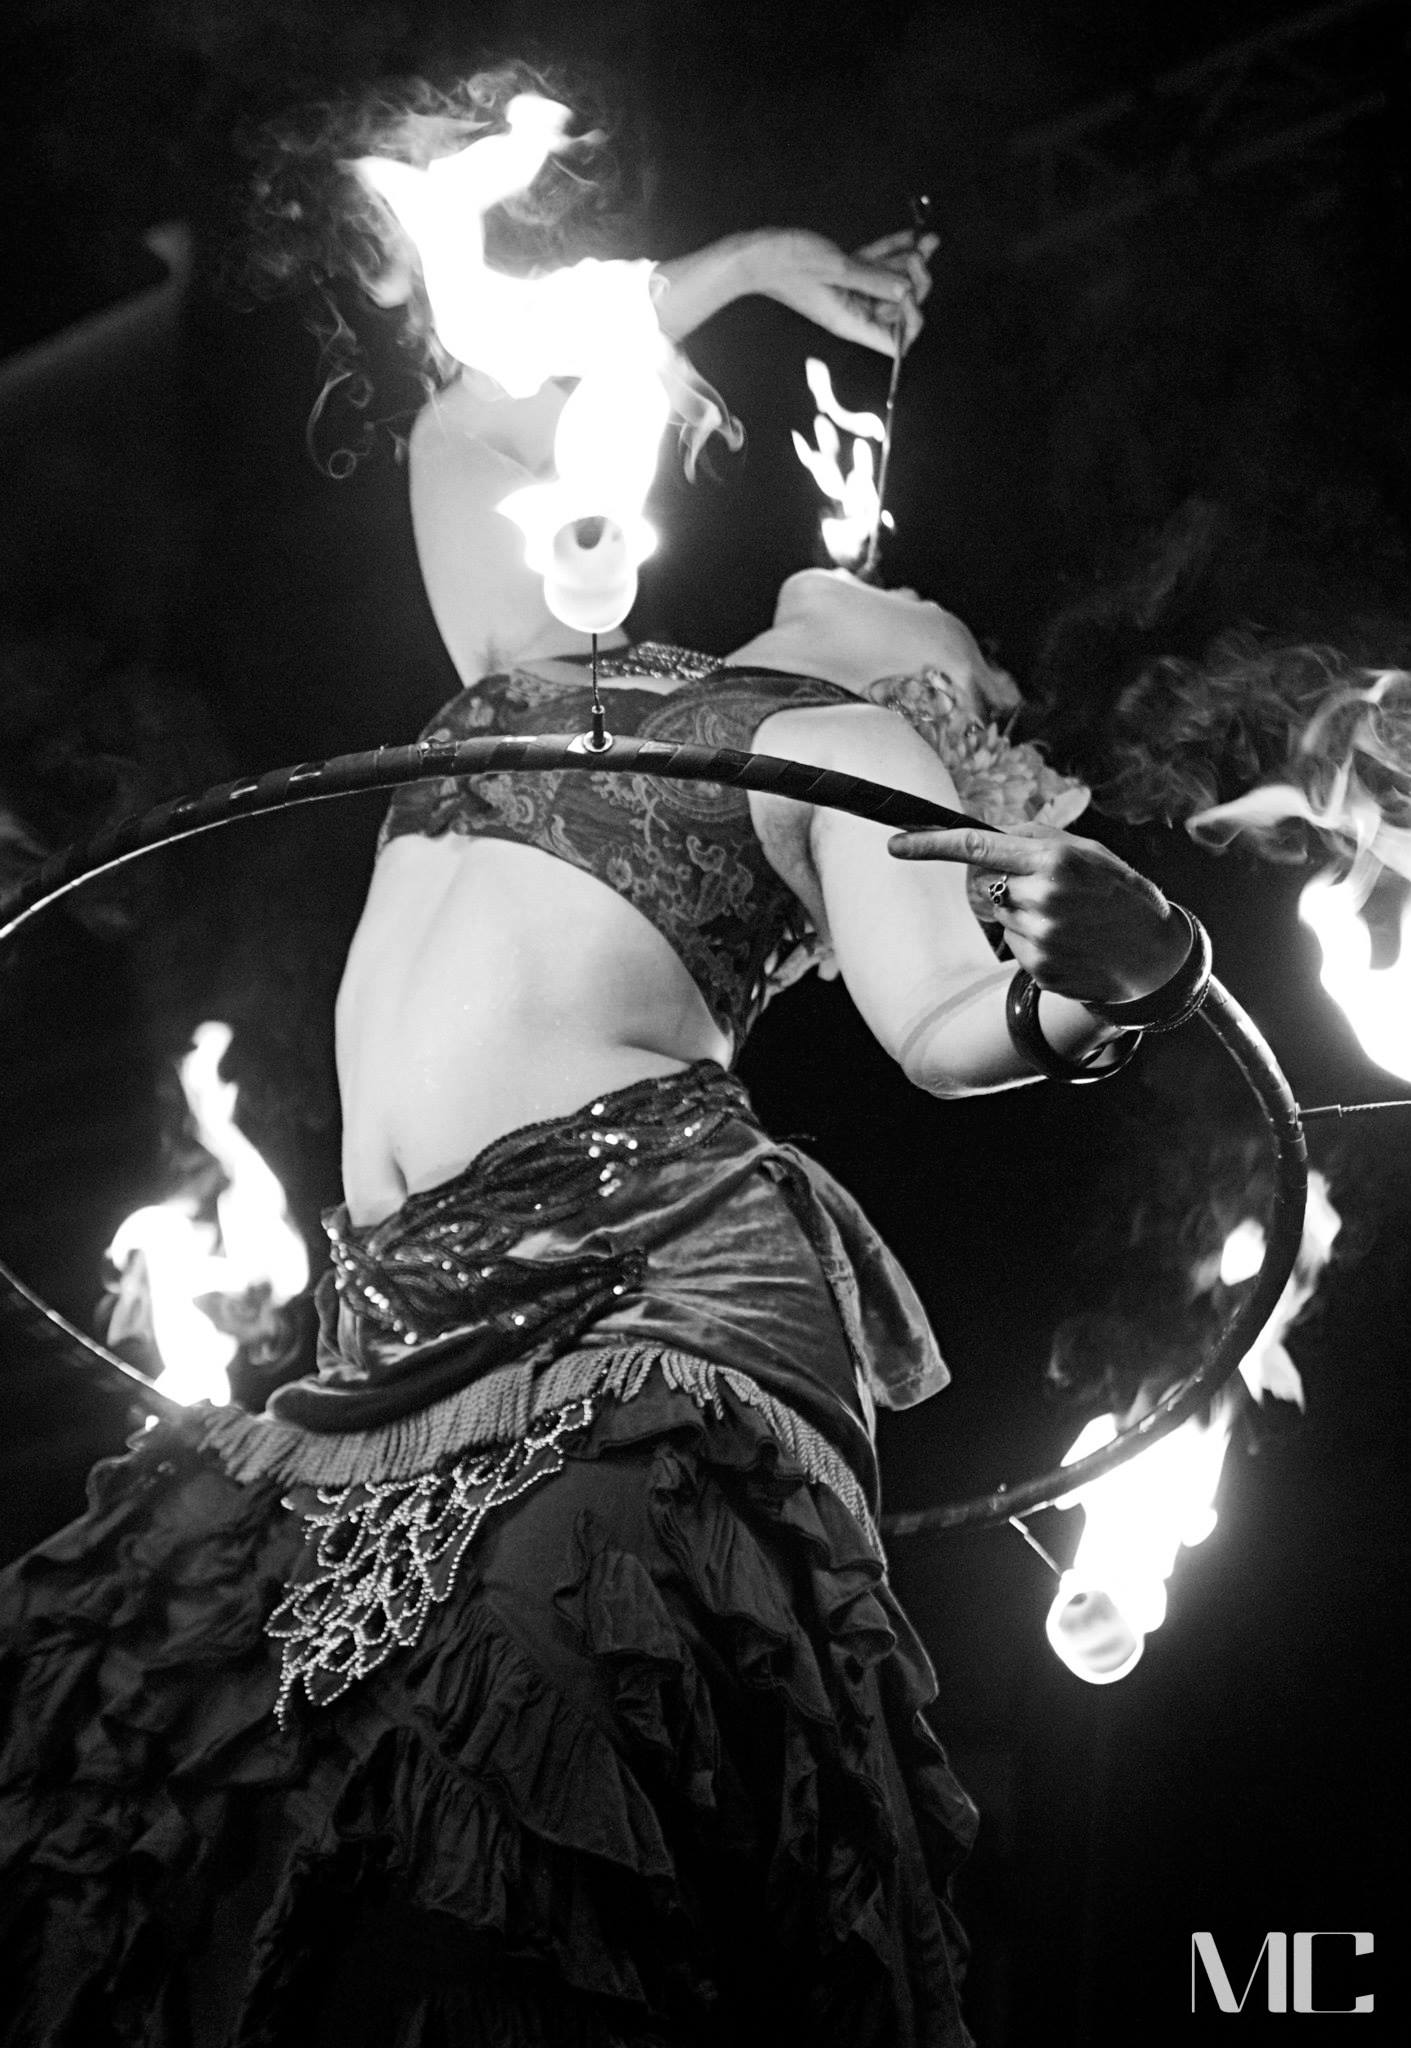 Fire at The Show Me Burlesque Festival in St. Louis